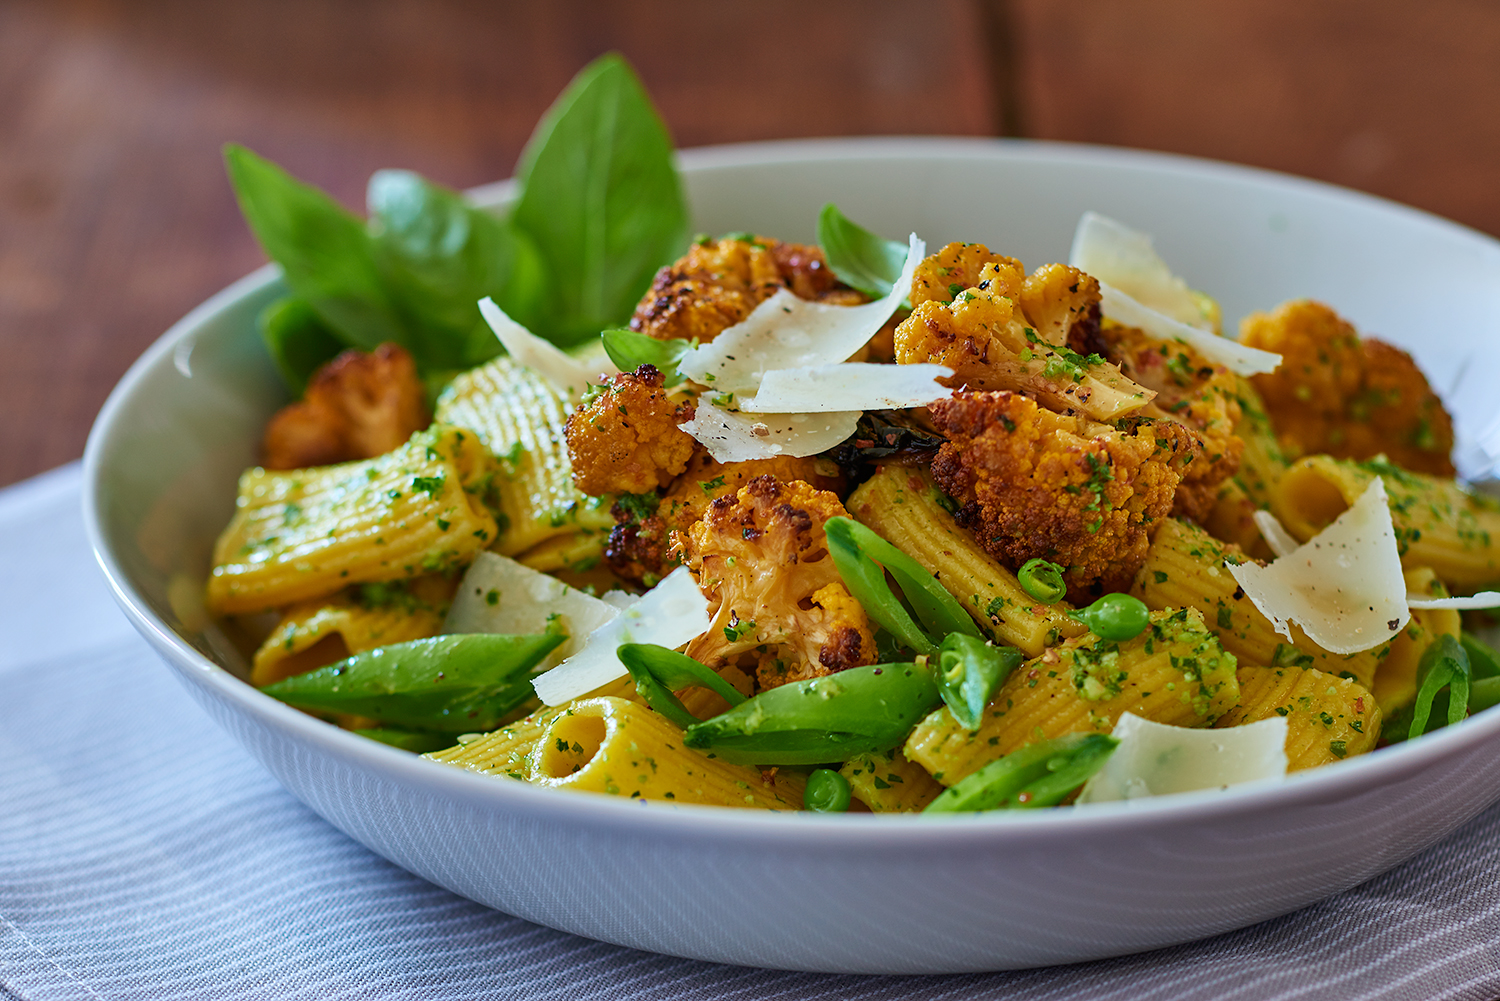 04_Pesto-Pasta-Rigatoni-Cauliflower_0255_original.jpg